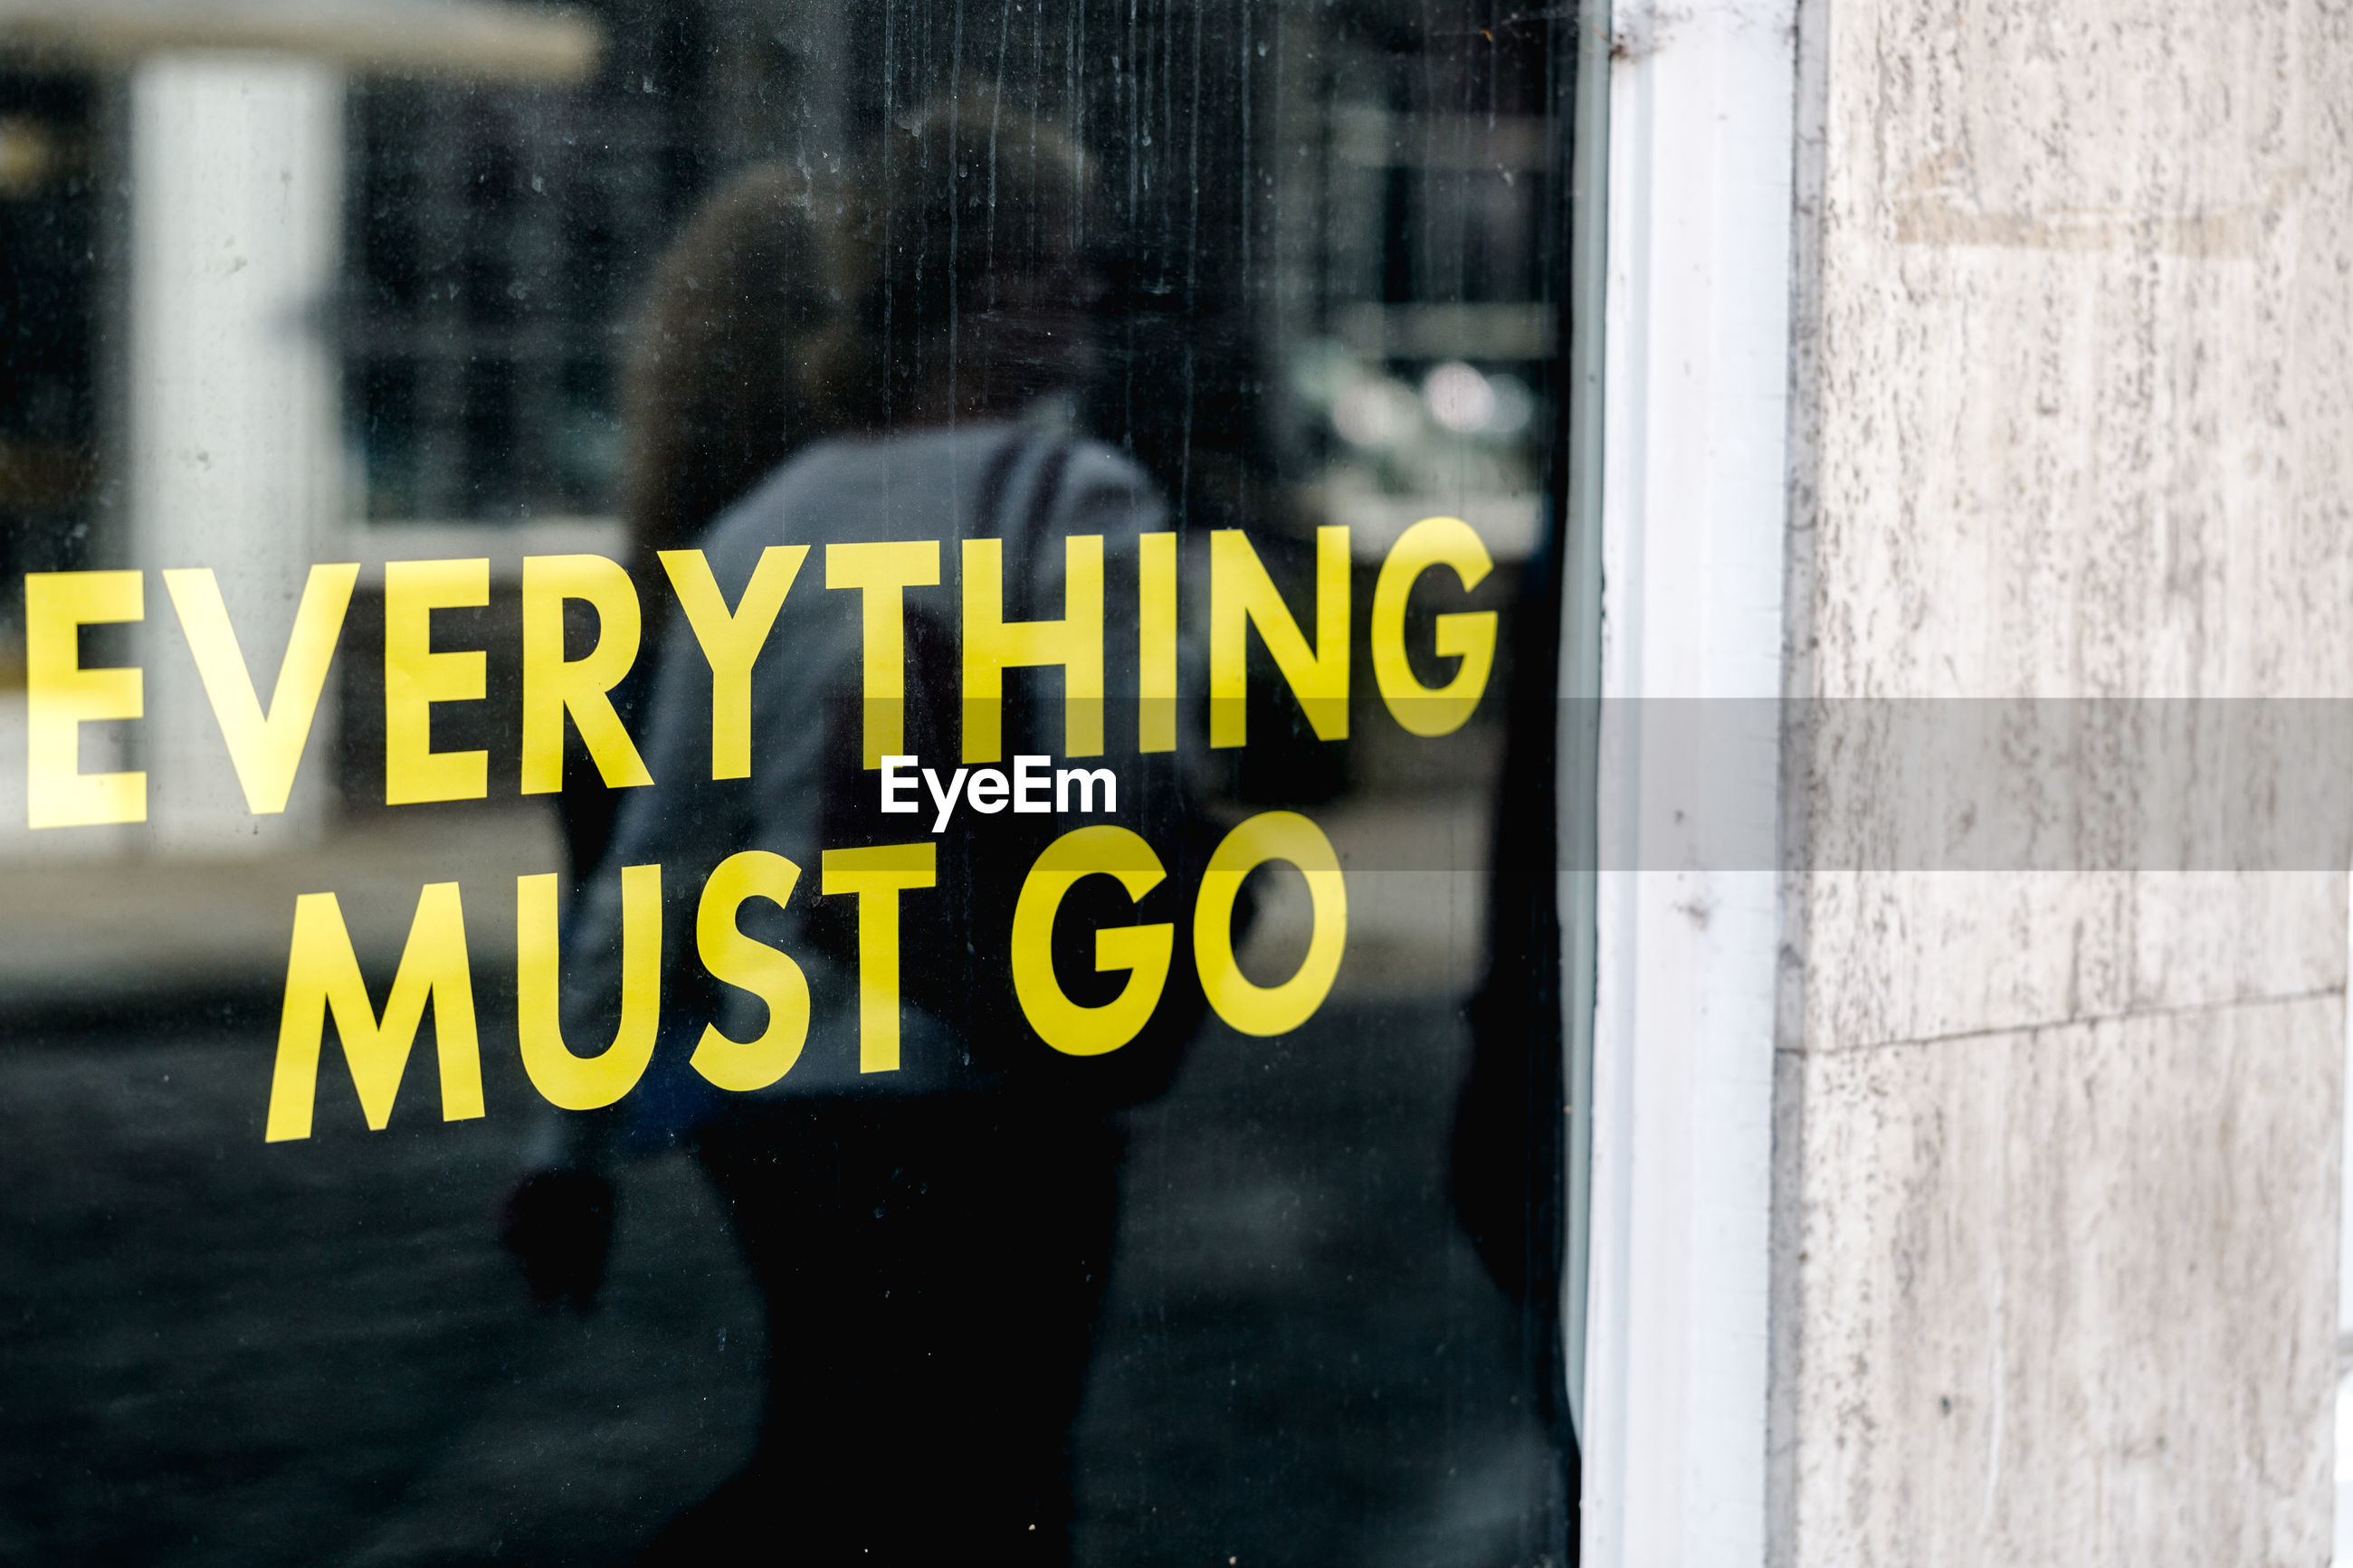 CLOSE-UP OF YELLOW SIGN ON WINDOW